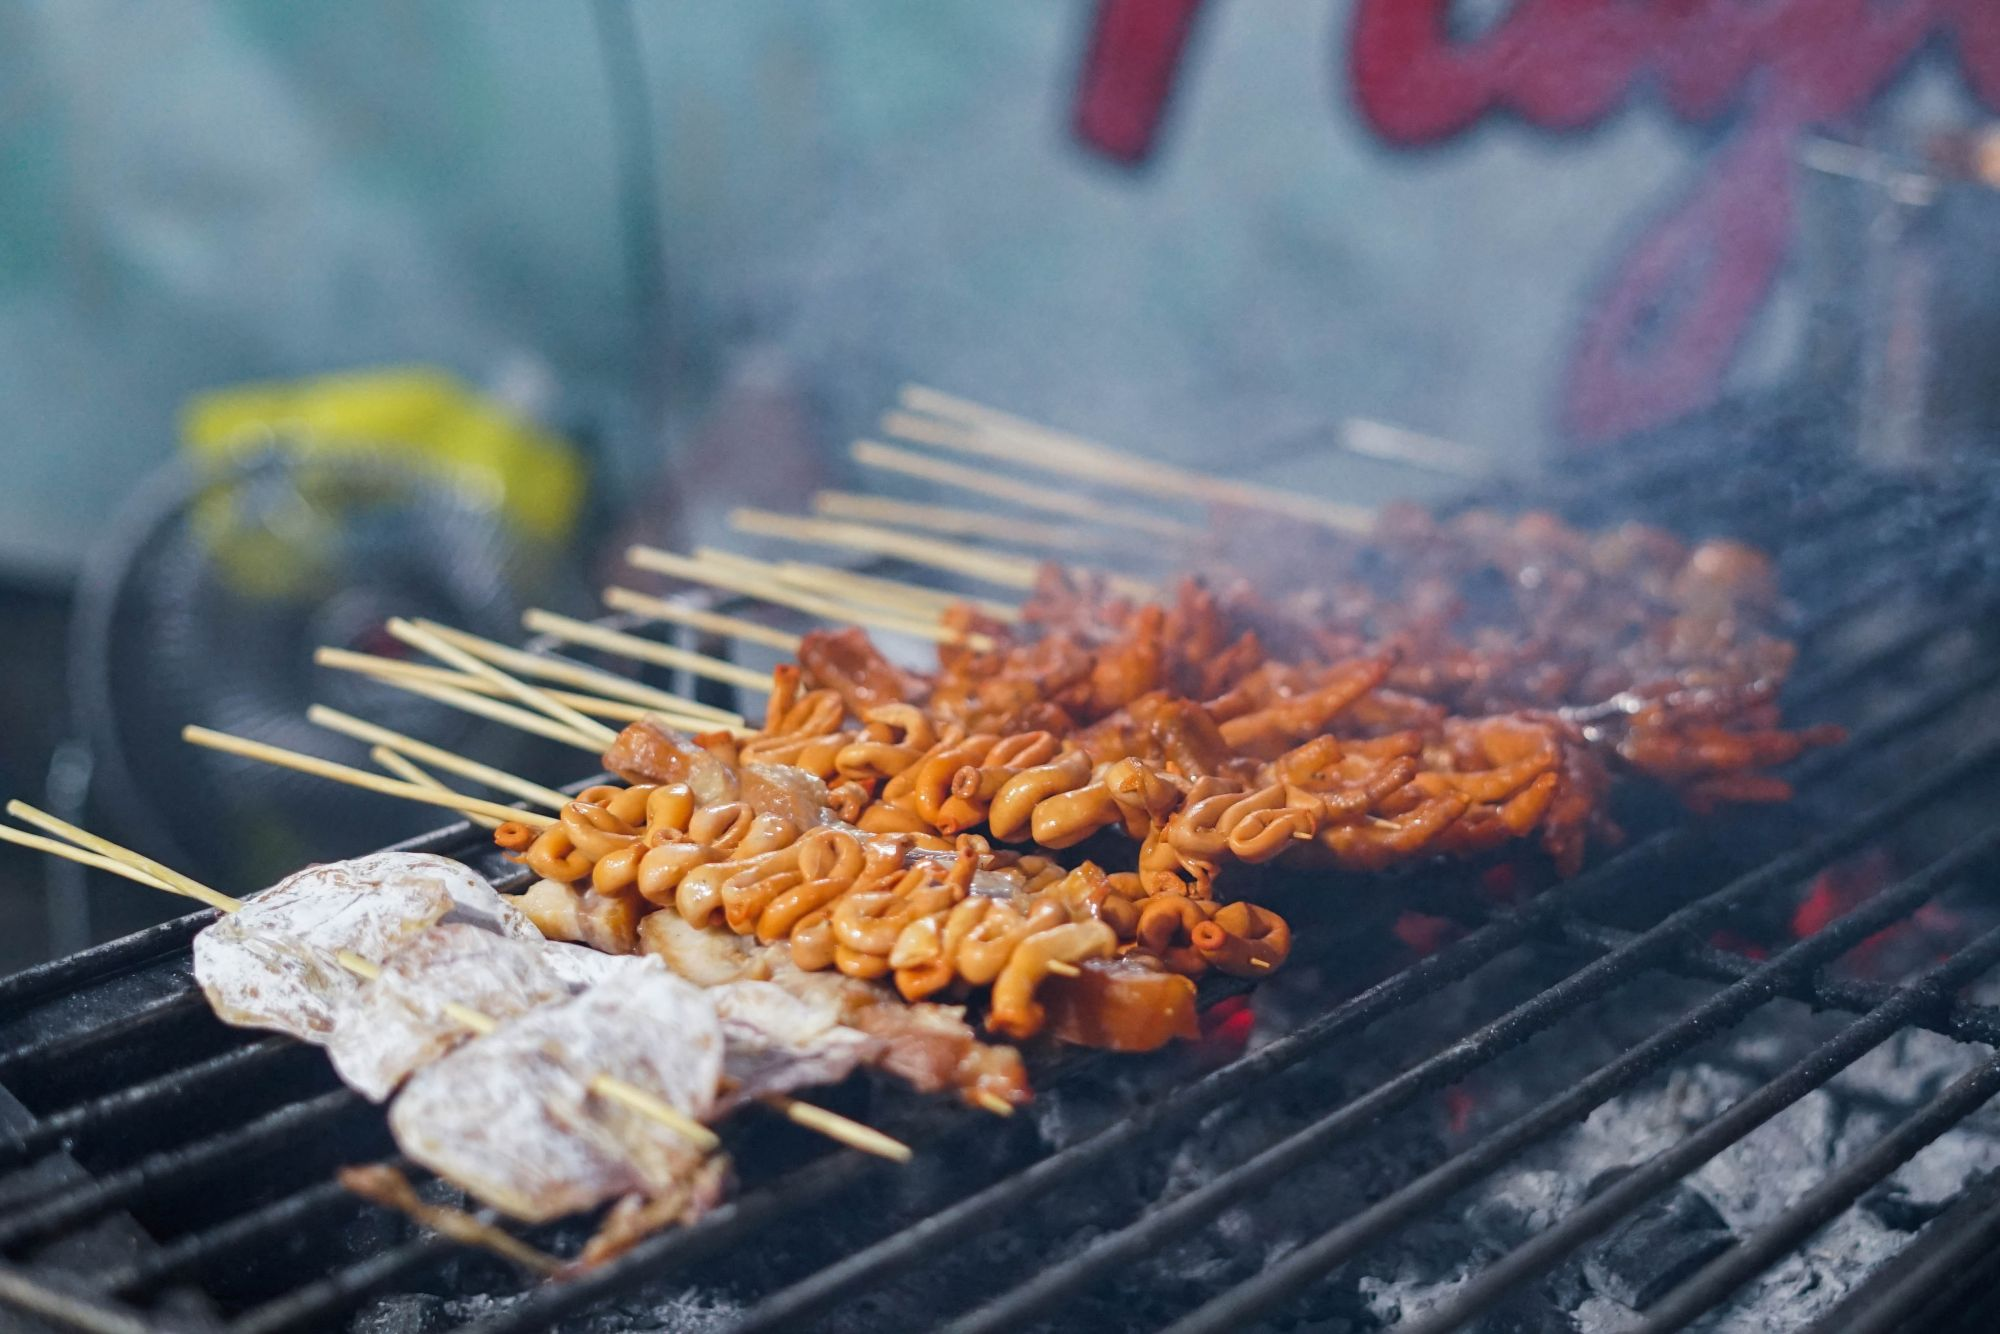 Find your Filipino favourites in and around Melbourne!